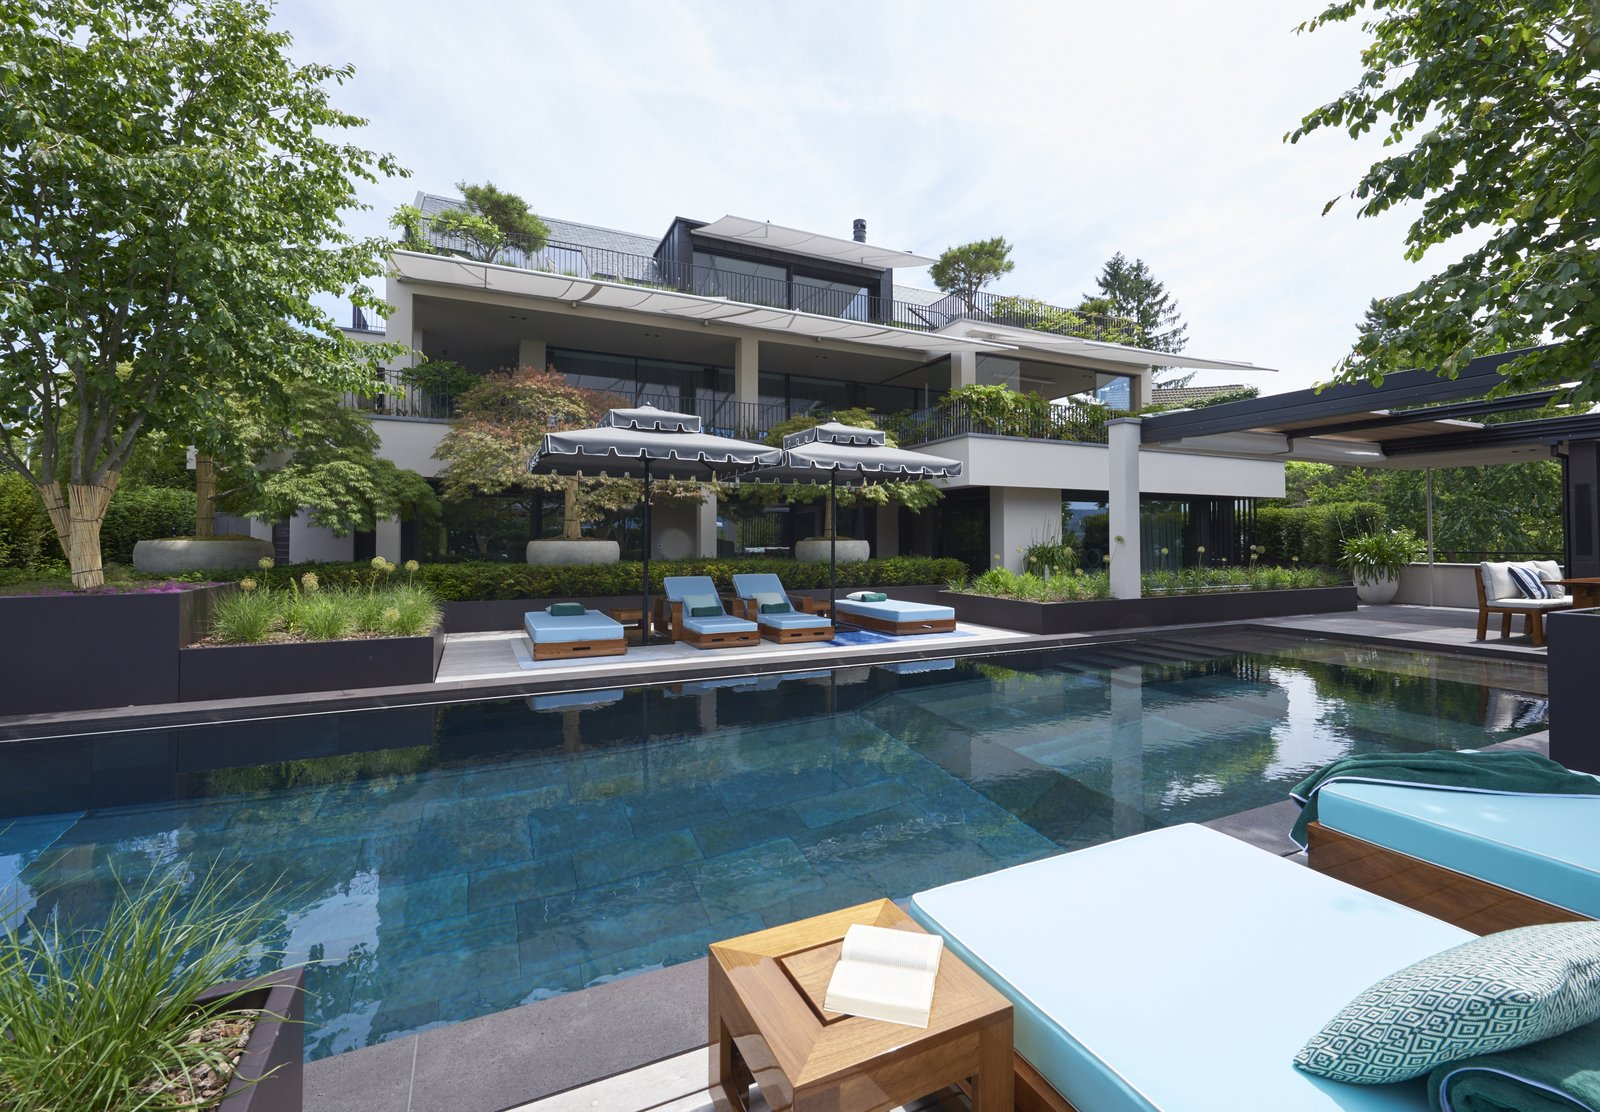 Outdoor, Gardens, Flowers, Garden, Grass, Swimming, Infinity, Trees, Stone, and Landscape Pool, garden  Best Outdoor Stone Infinity Photos from Rock'n Roll